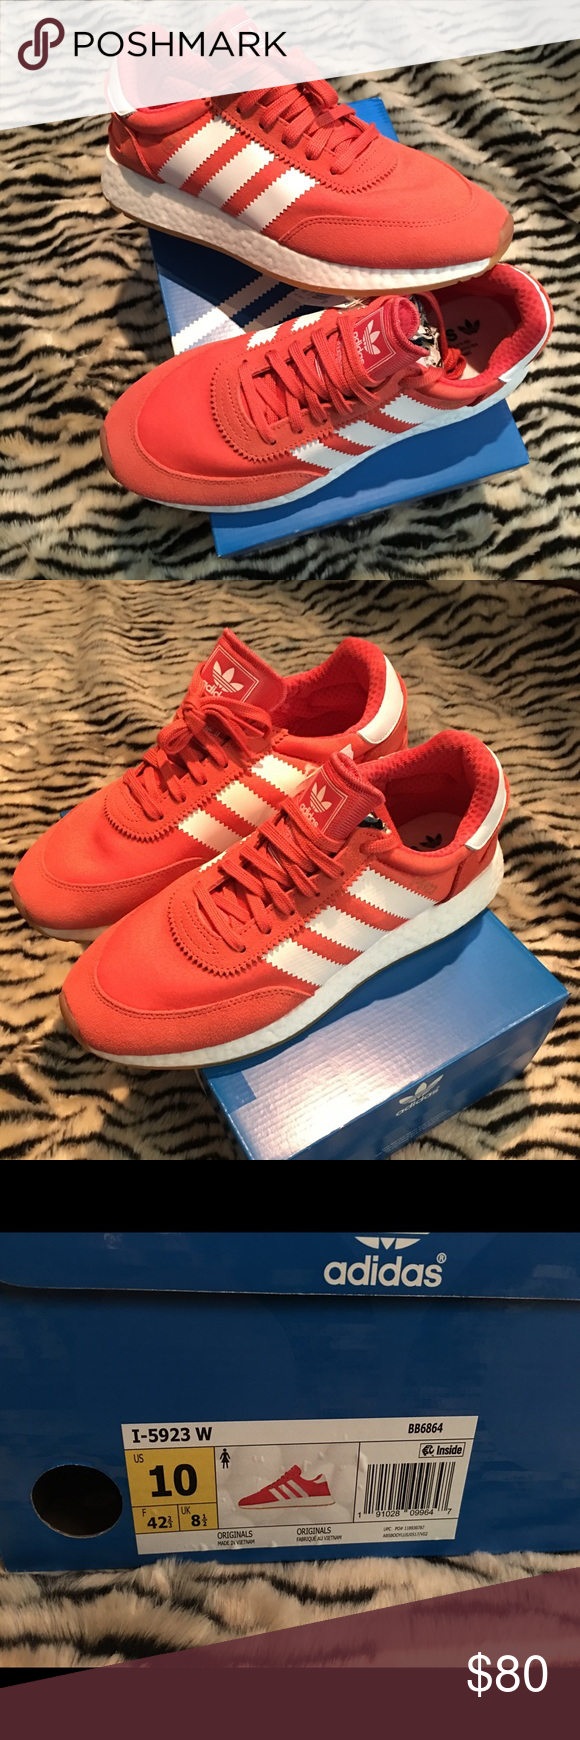 Women s Adidas I-5923 Shoes Women s Adidas Originals I-5923 shoes. Size 10.  In color Trace Scarlet  Cloud White  Gum. Brand new with tags. adidas Shoes  ... 8c8ddca1e